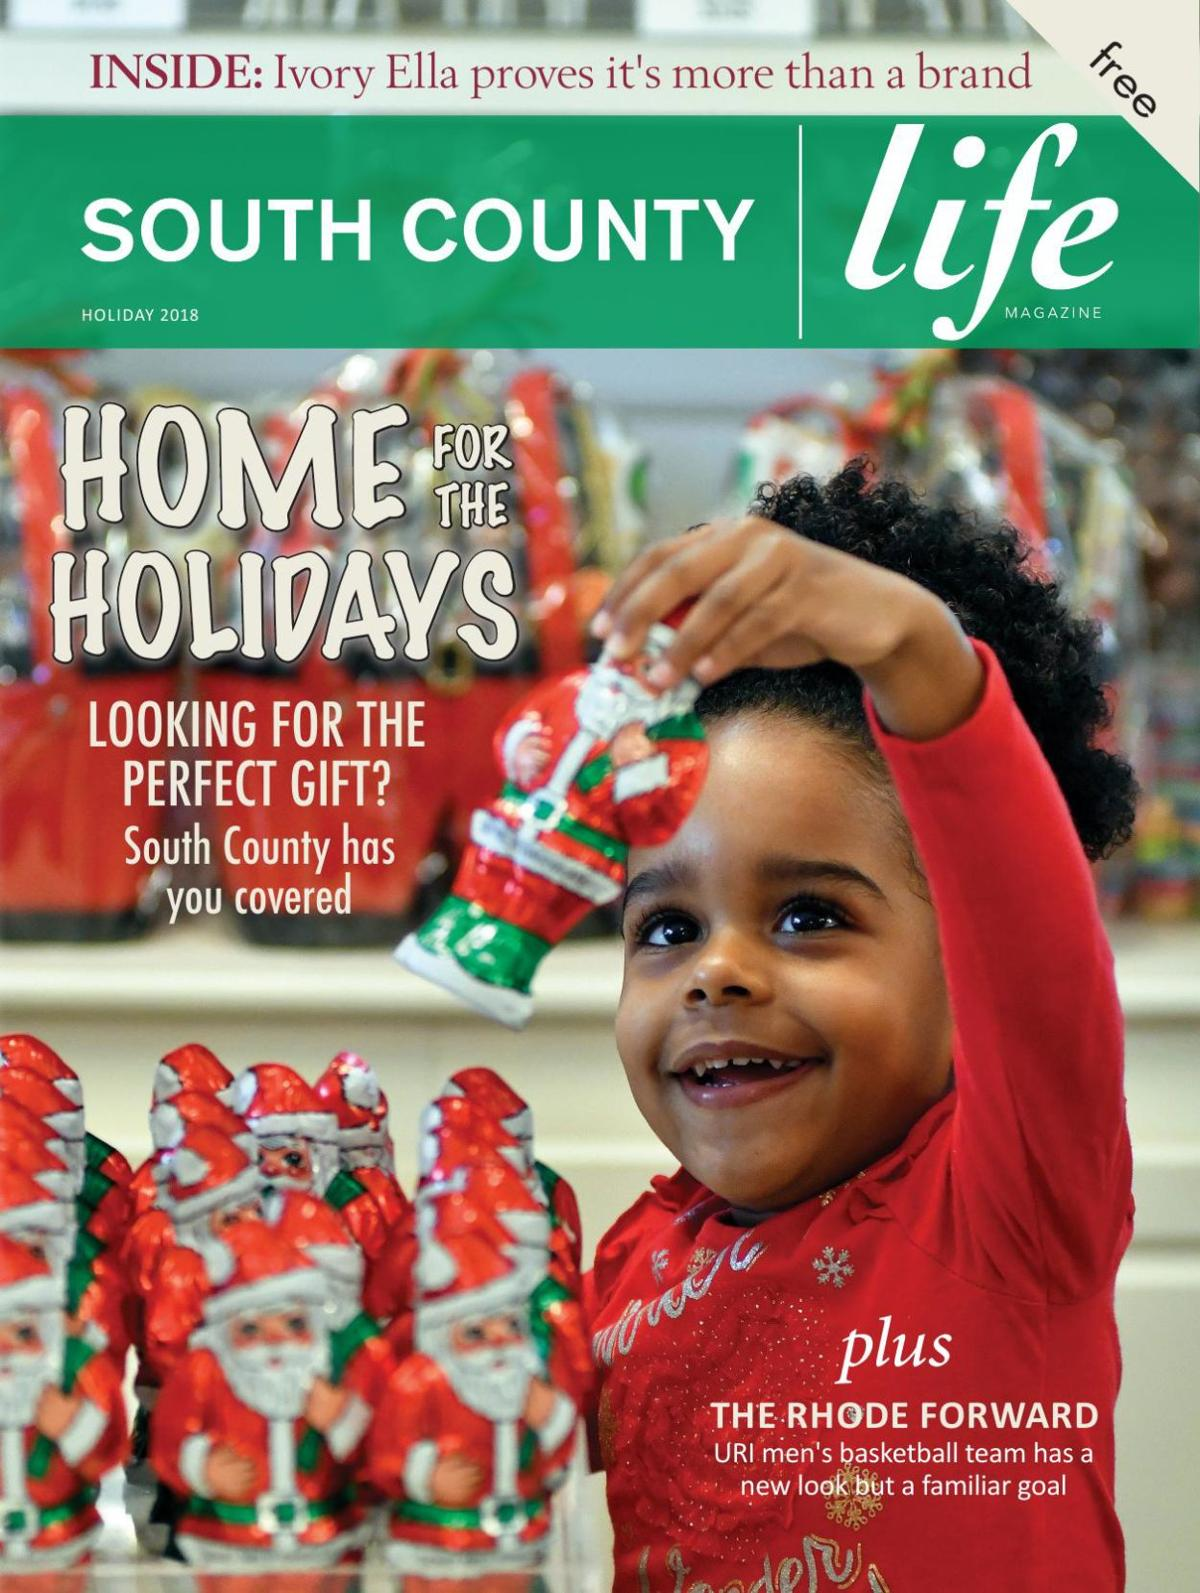 South County Life Magazine Holiday 2018 Cover